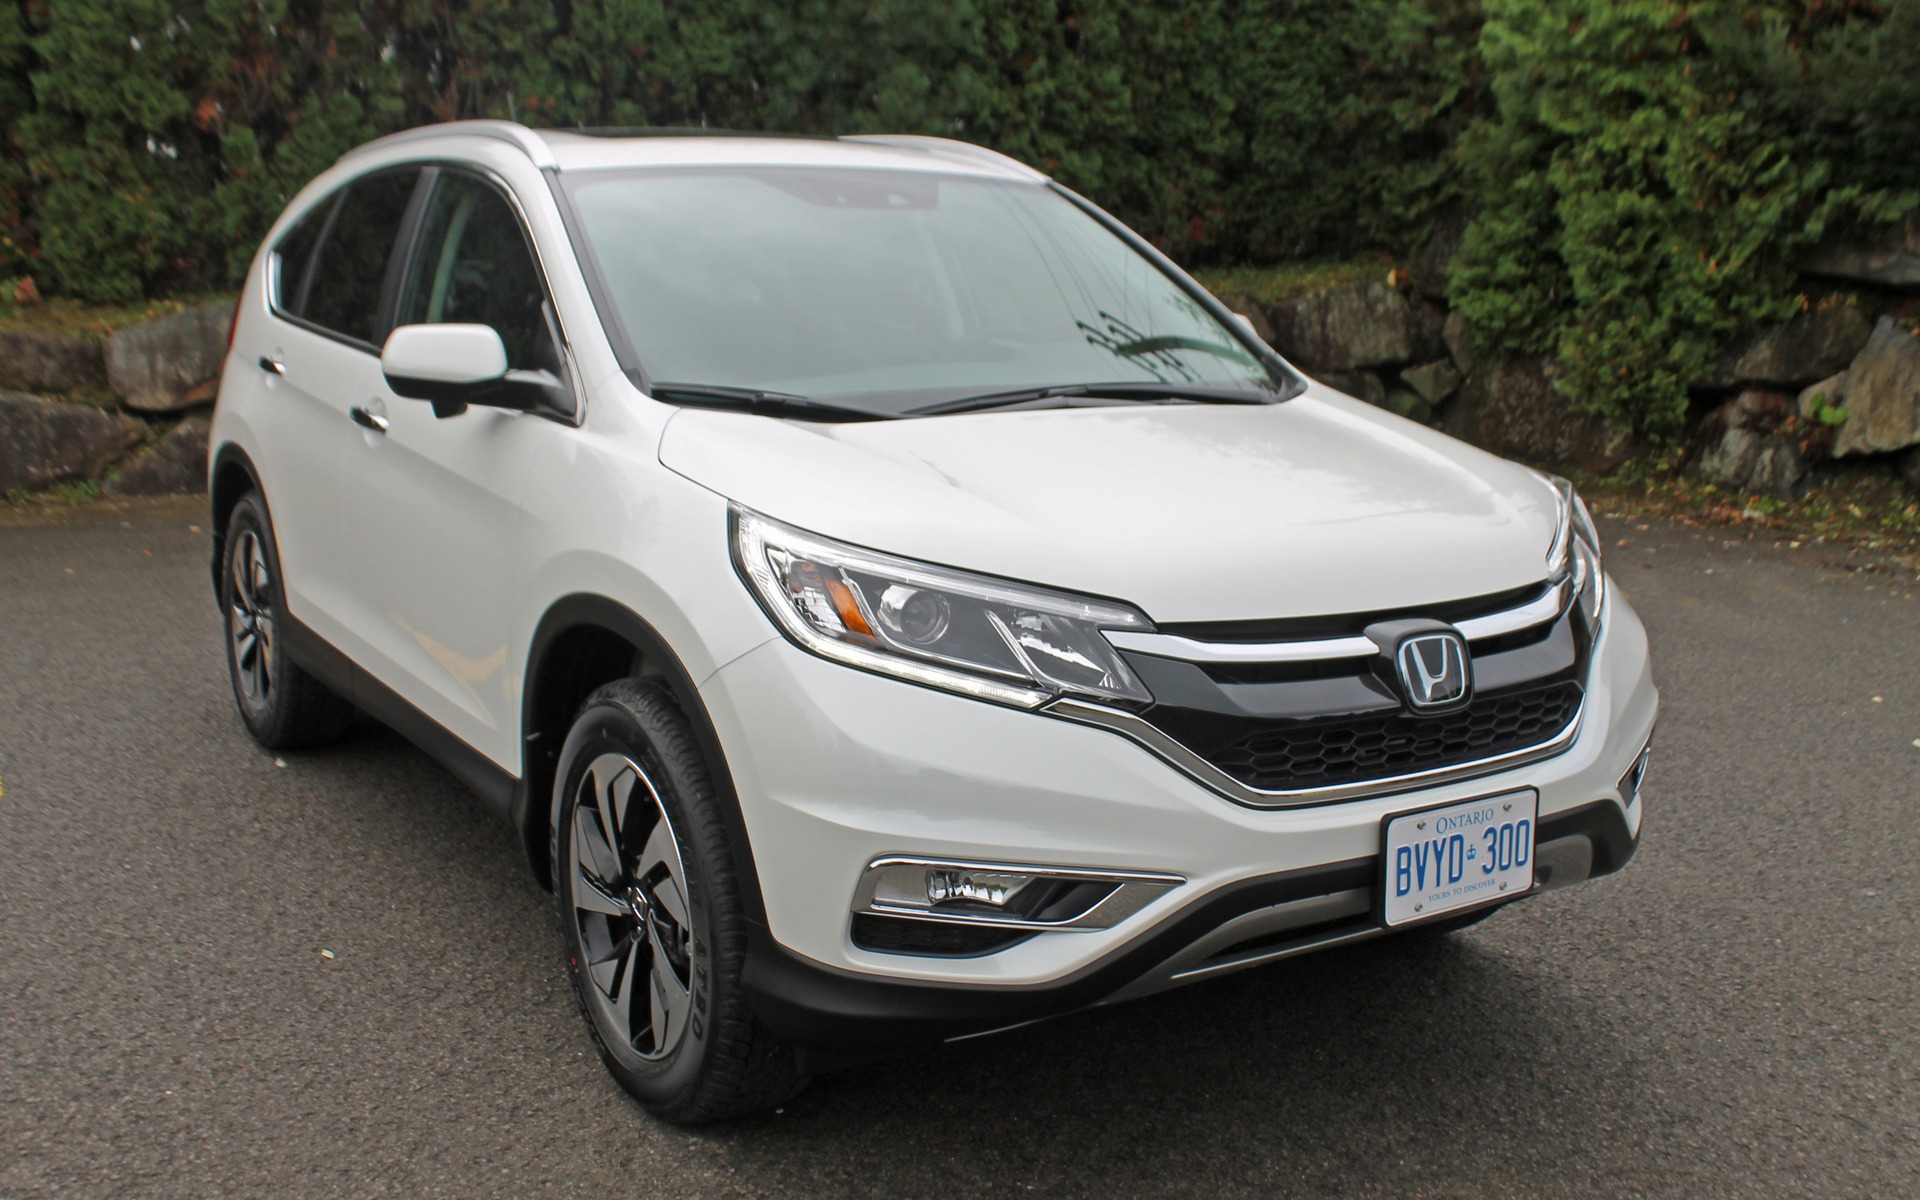 2015 honda cr v finally a bold move review the car guide. Black Bedroom Furniture Sets. Home Design Ideas